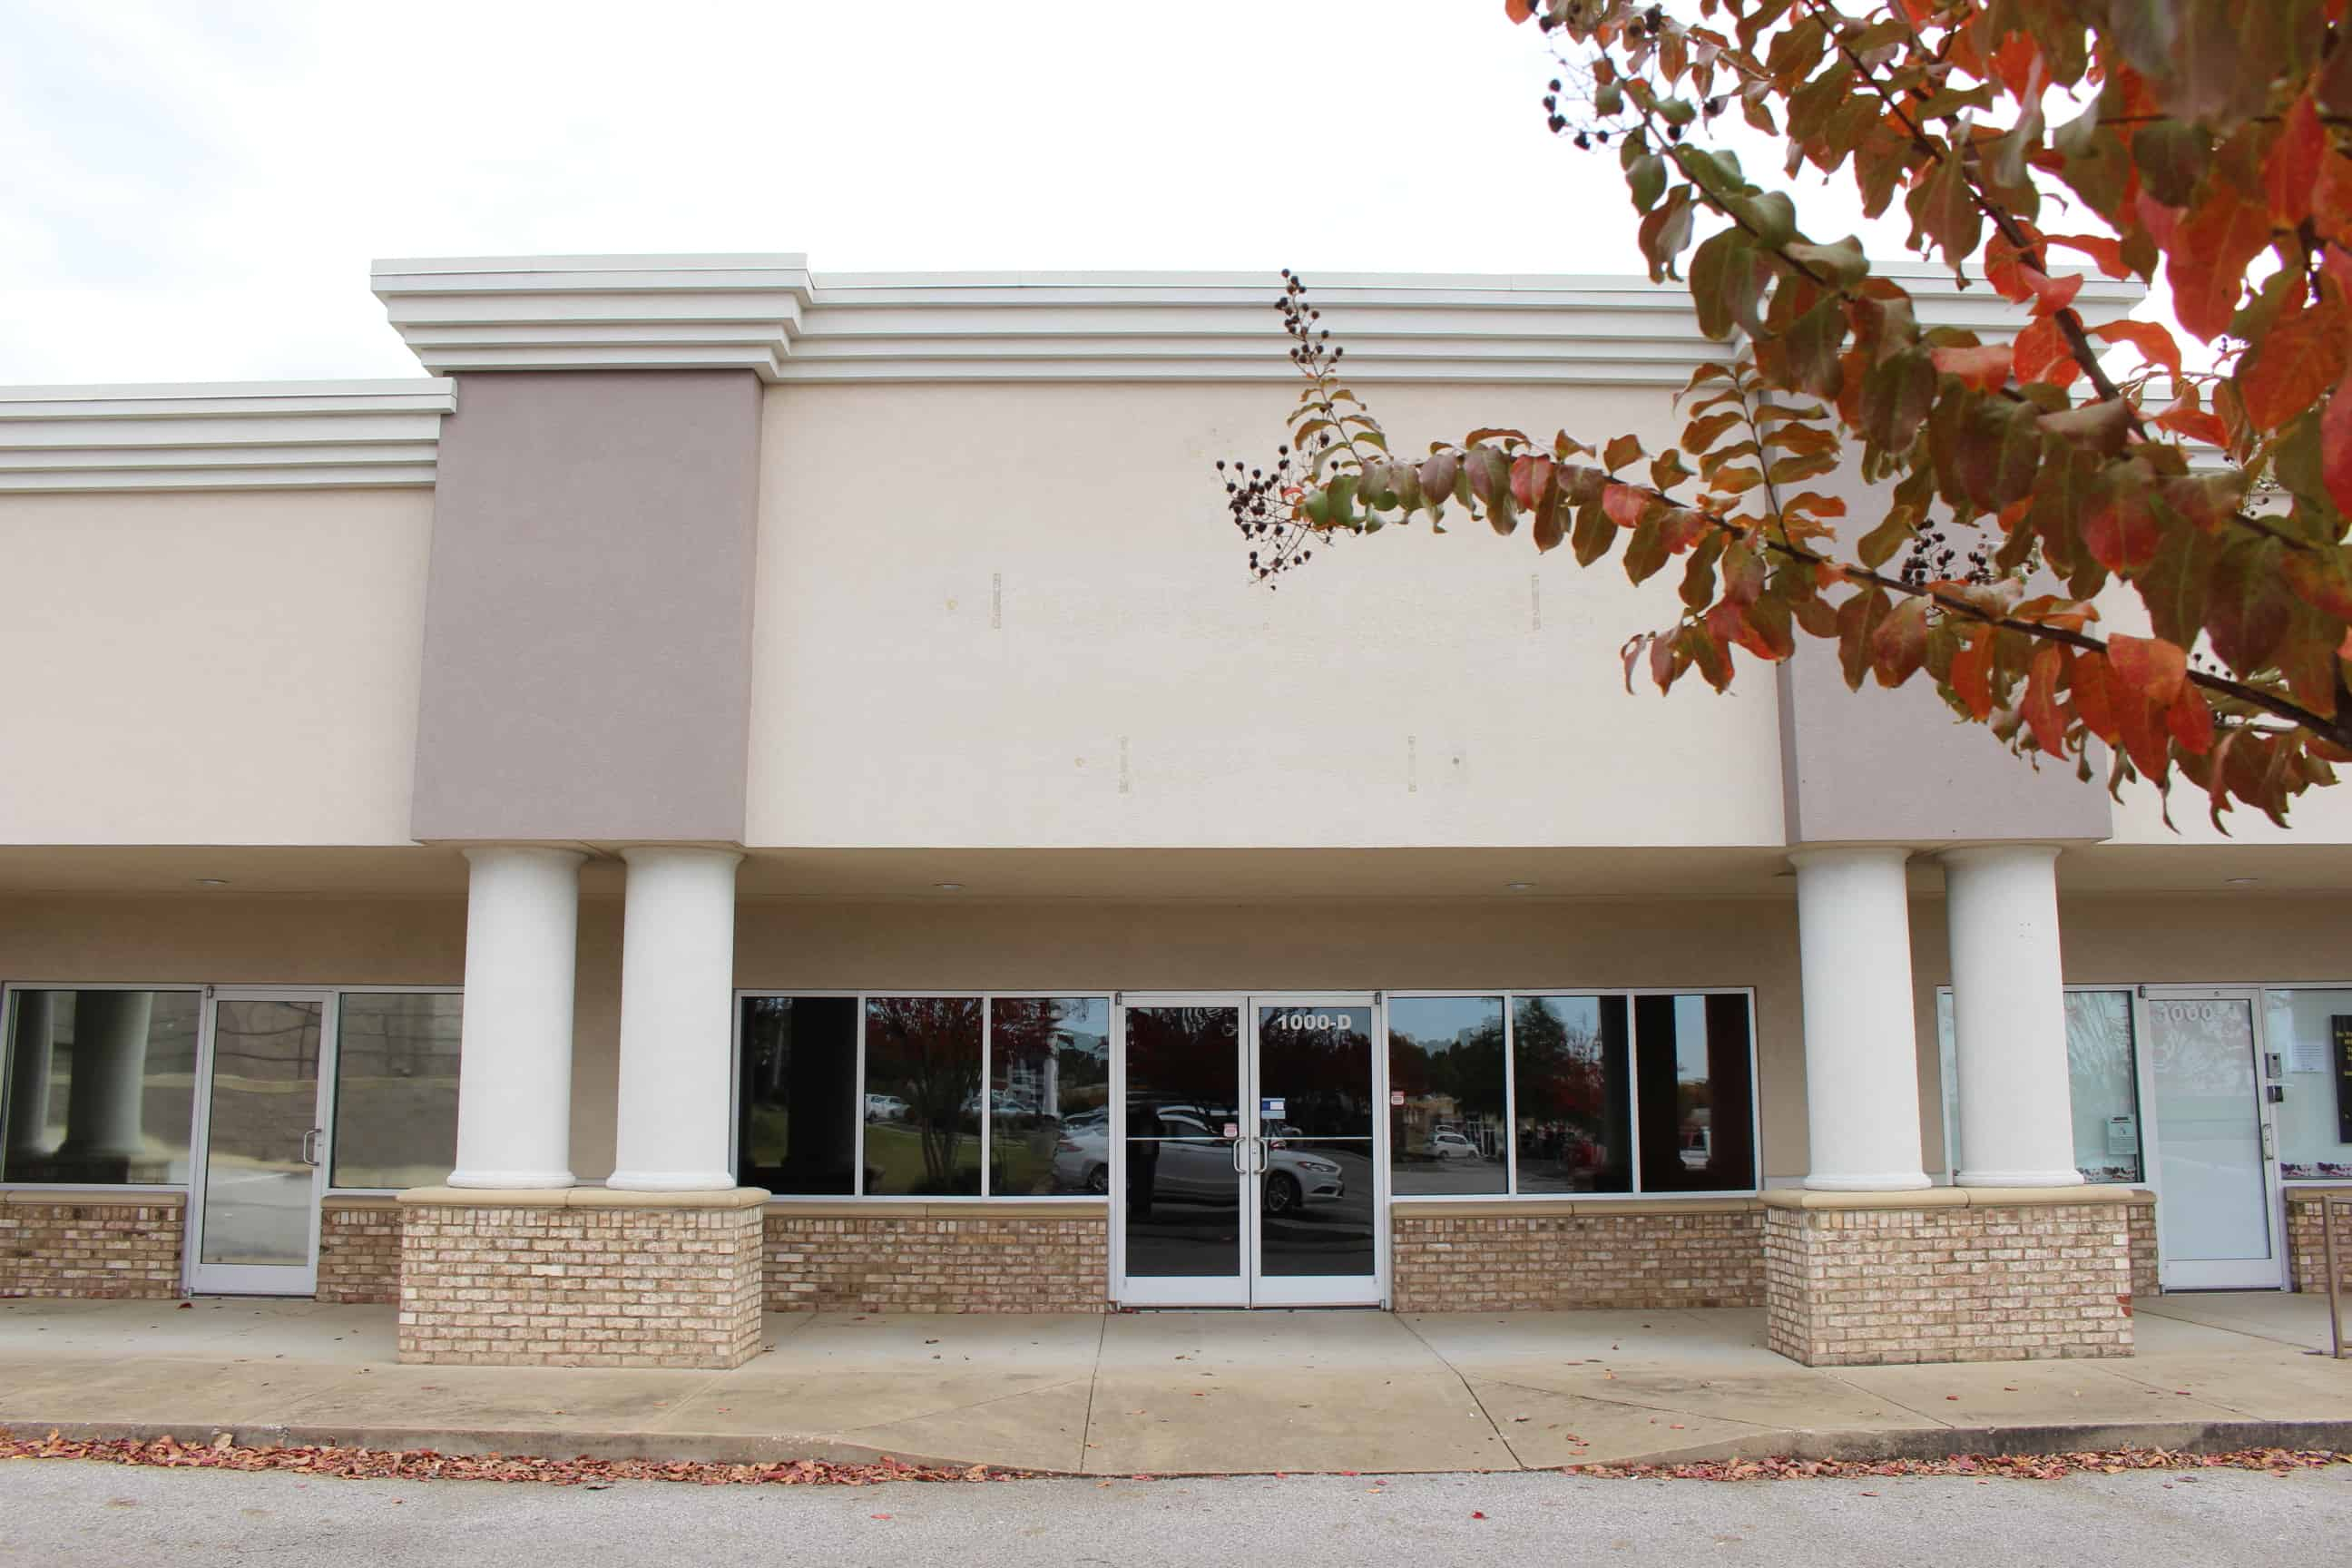 1000-D Vann Drive – For Lease Only